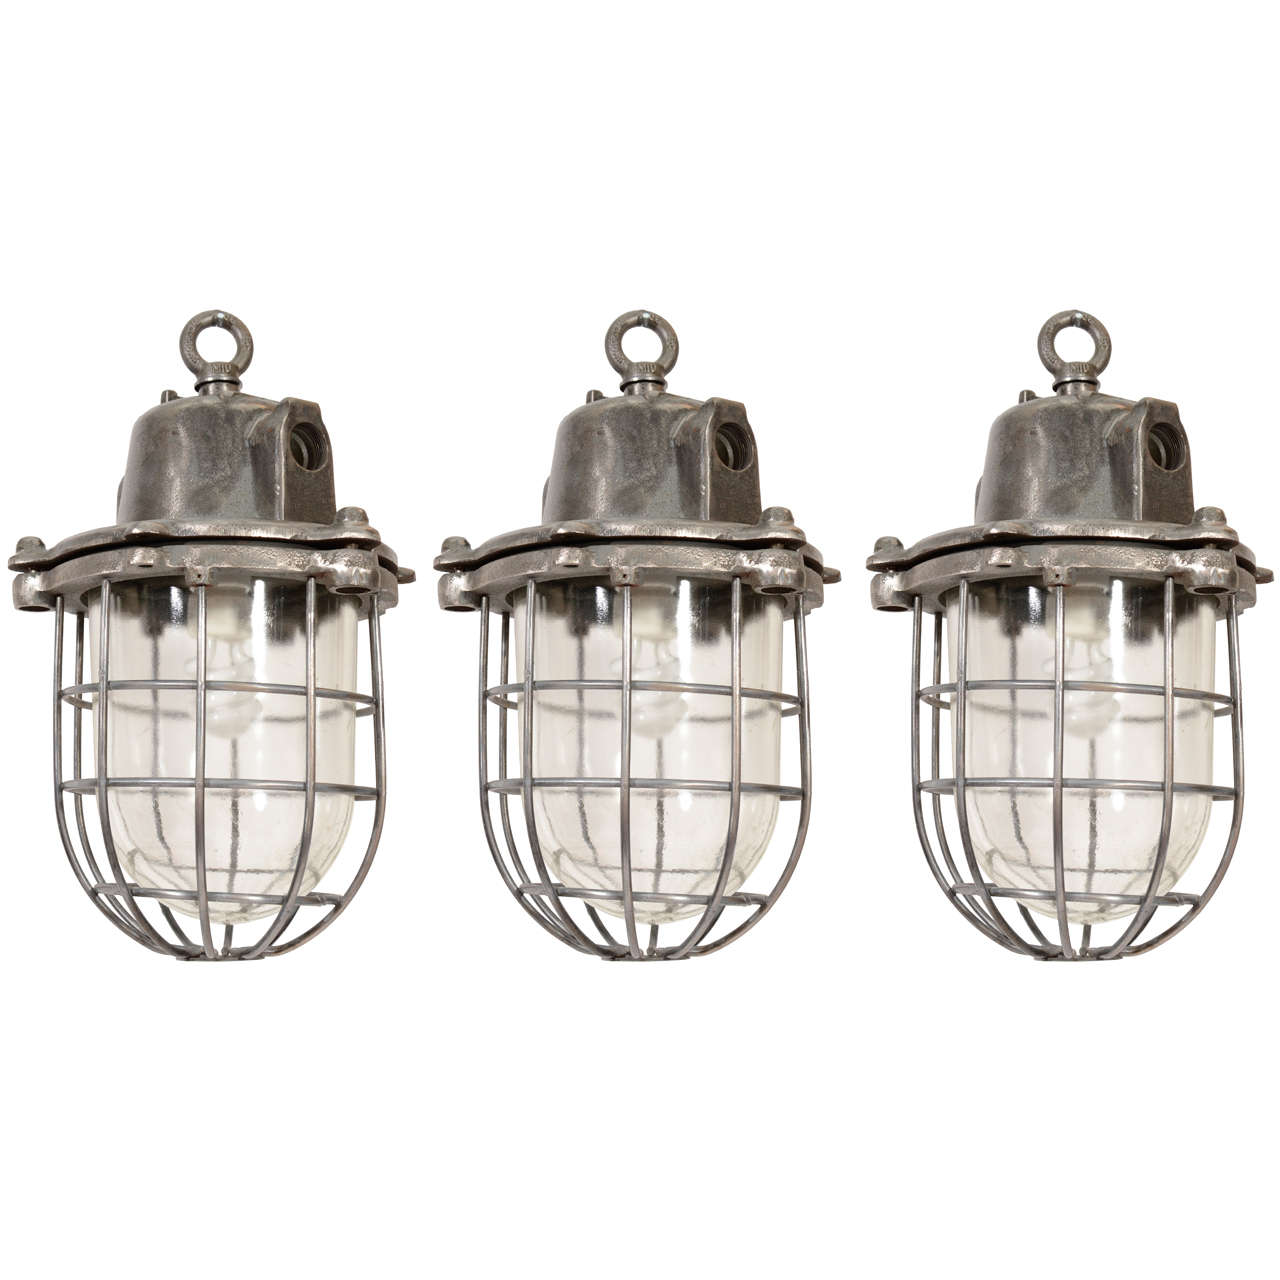 Industrial Bell Pendant Light: French Metal Industrial Pendant Light With Cage And Bell